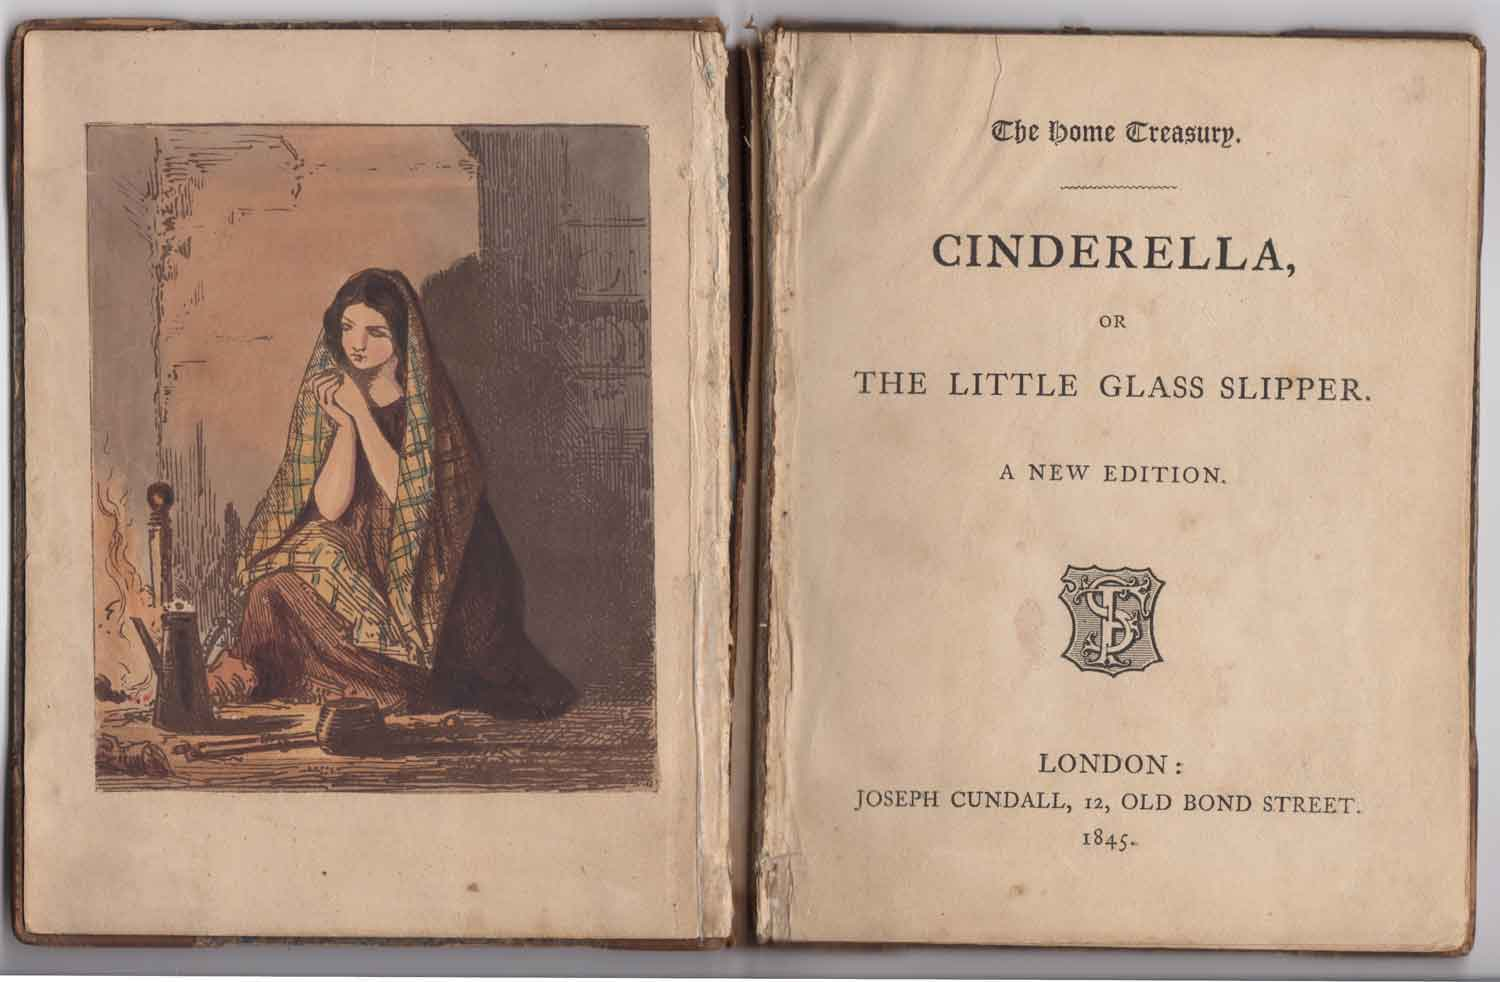 Cinderella Book (from the Collection Book) 1845 In front of the fireplace, Cinderella